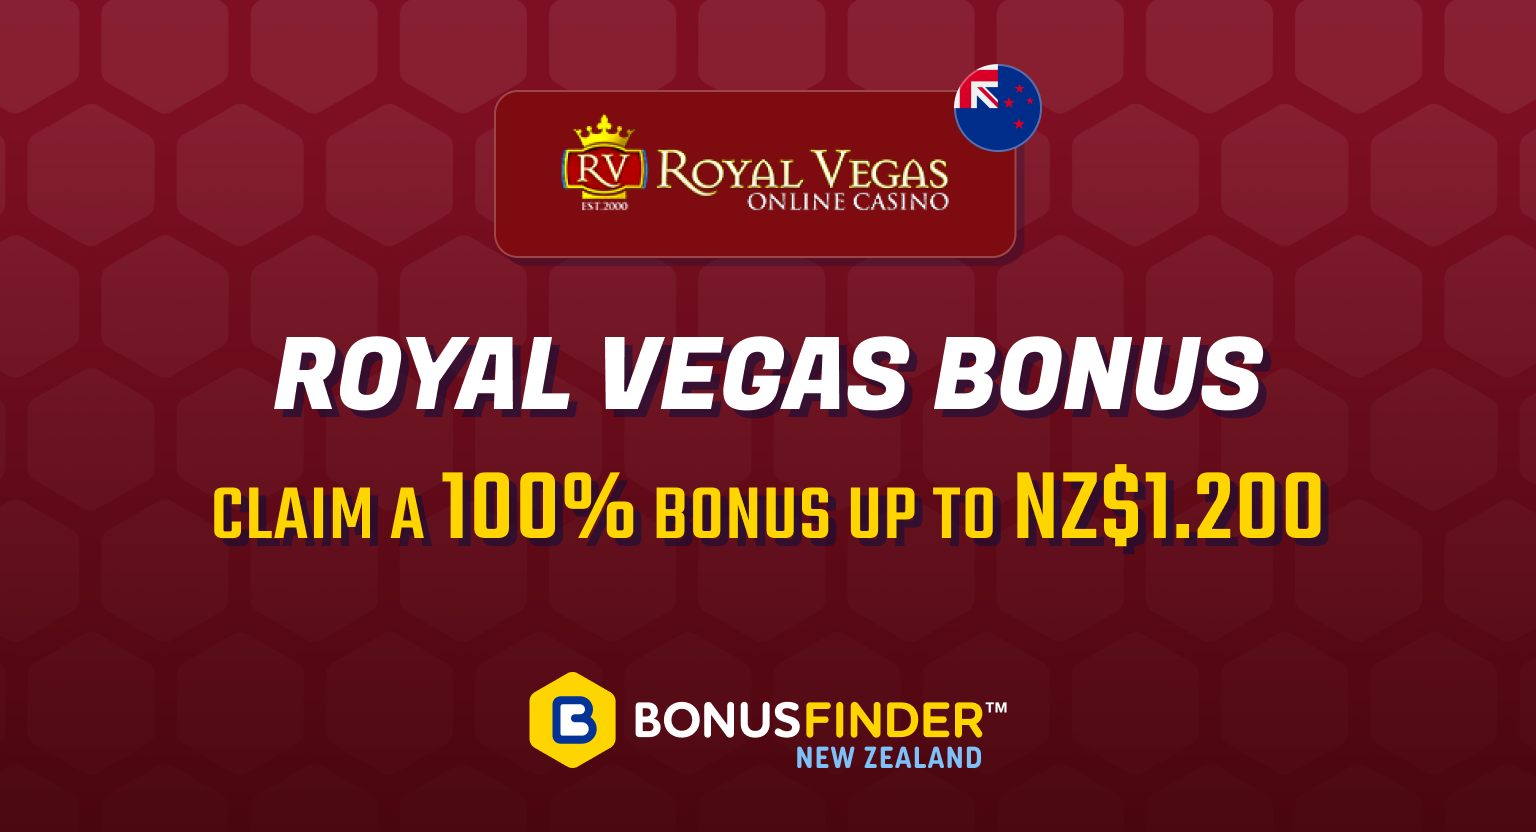 Royal Vegas bonus